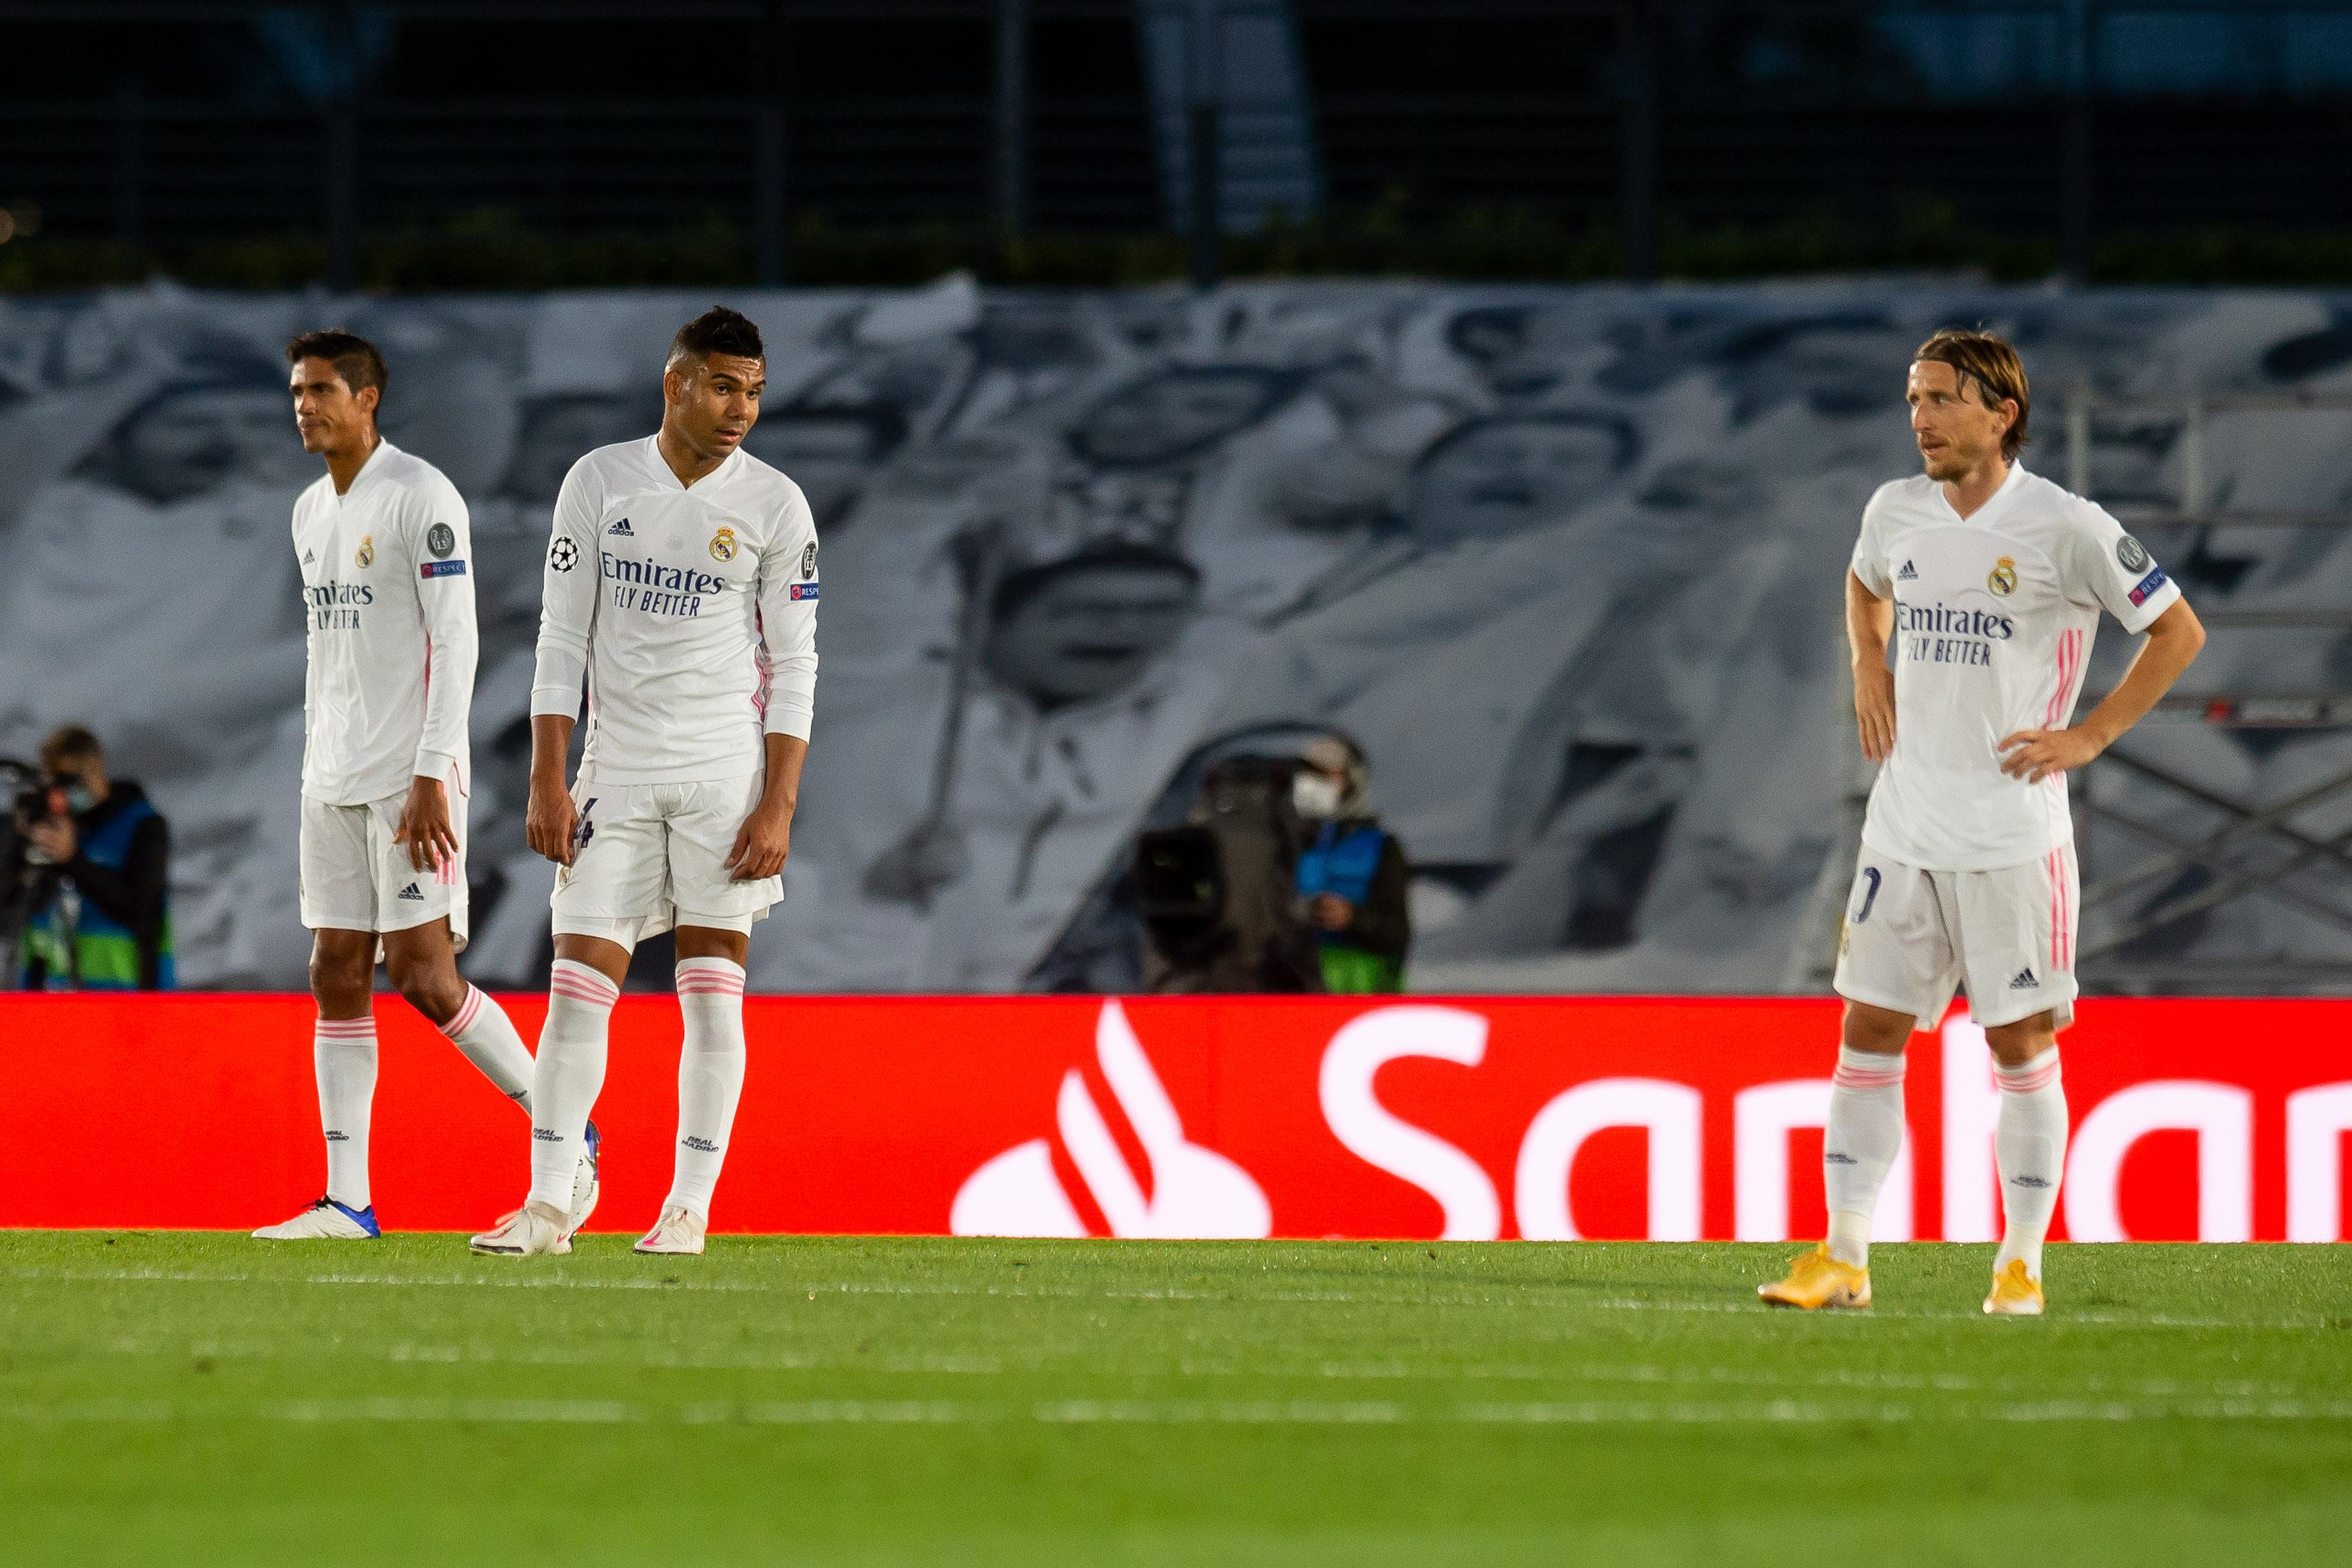 Champions League: Real Madrid stunned by Shakhtar Donetsk (video)